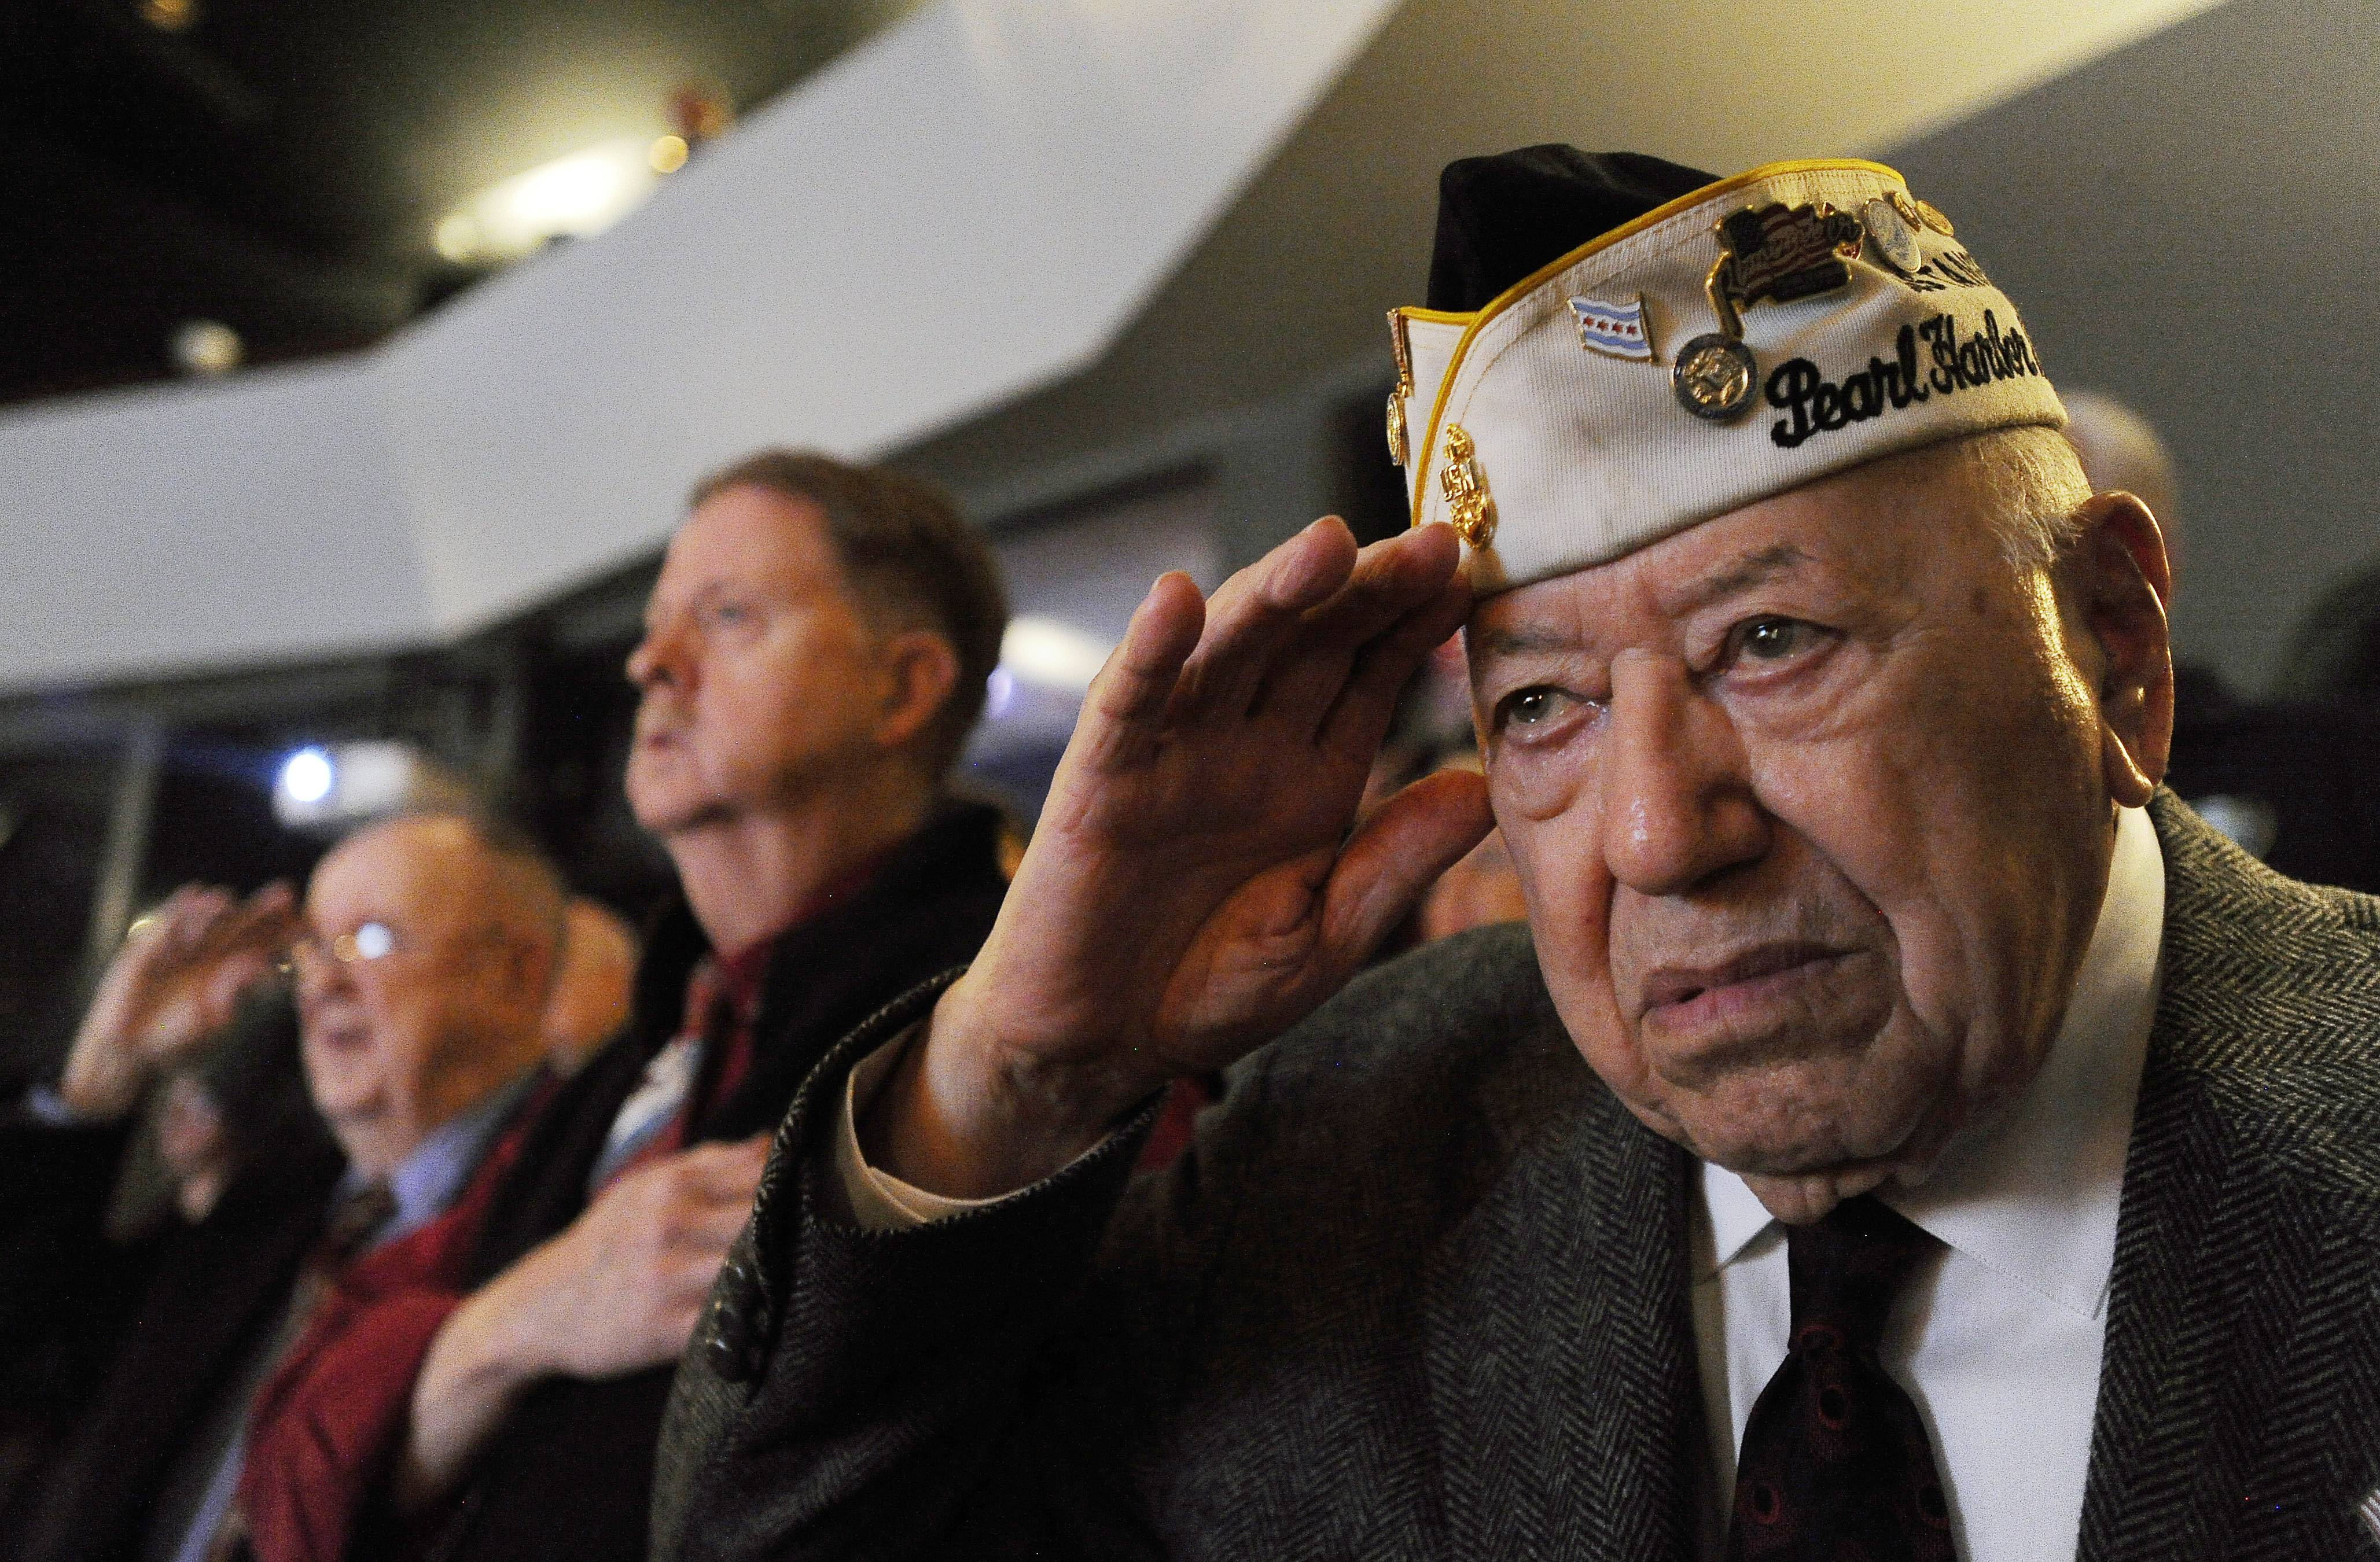 Pearl Harbor survivor Joe Triolo, 95, of Zion, salutes during the Remembrance Day Ceremony at Prairie Lakes Theater in Des Plaines in 2015.